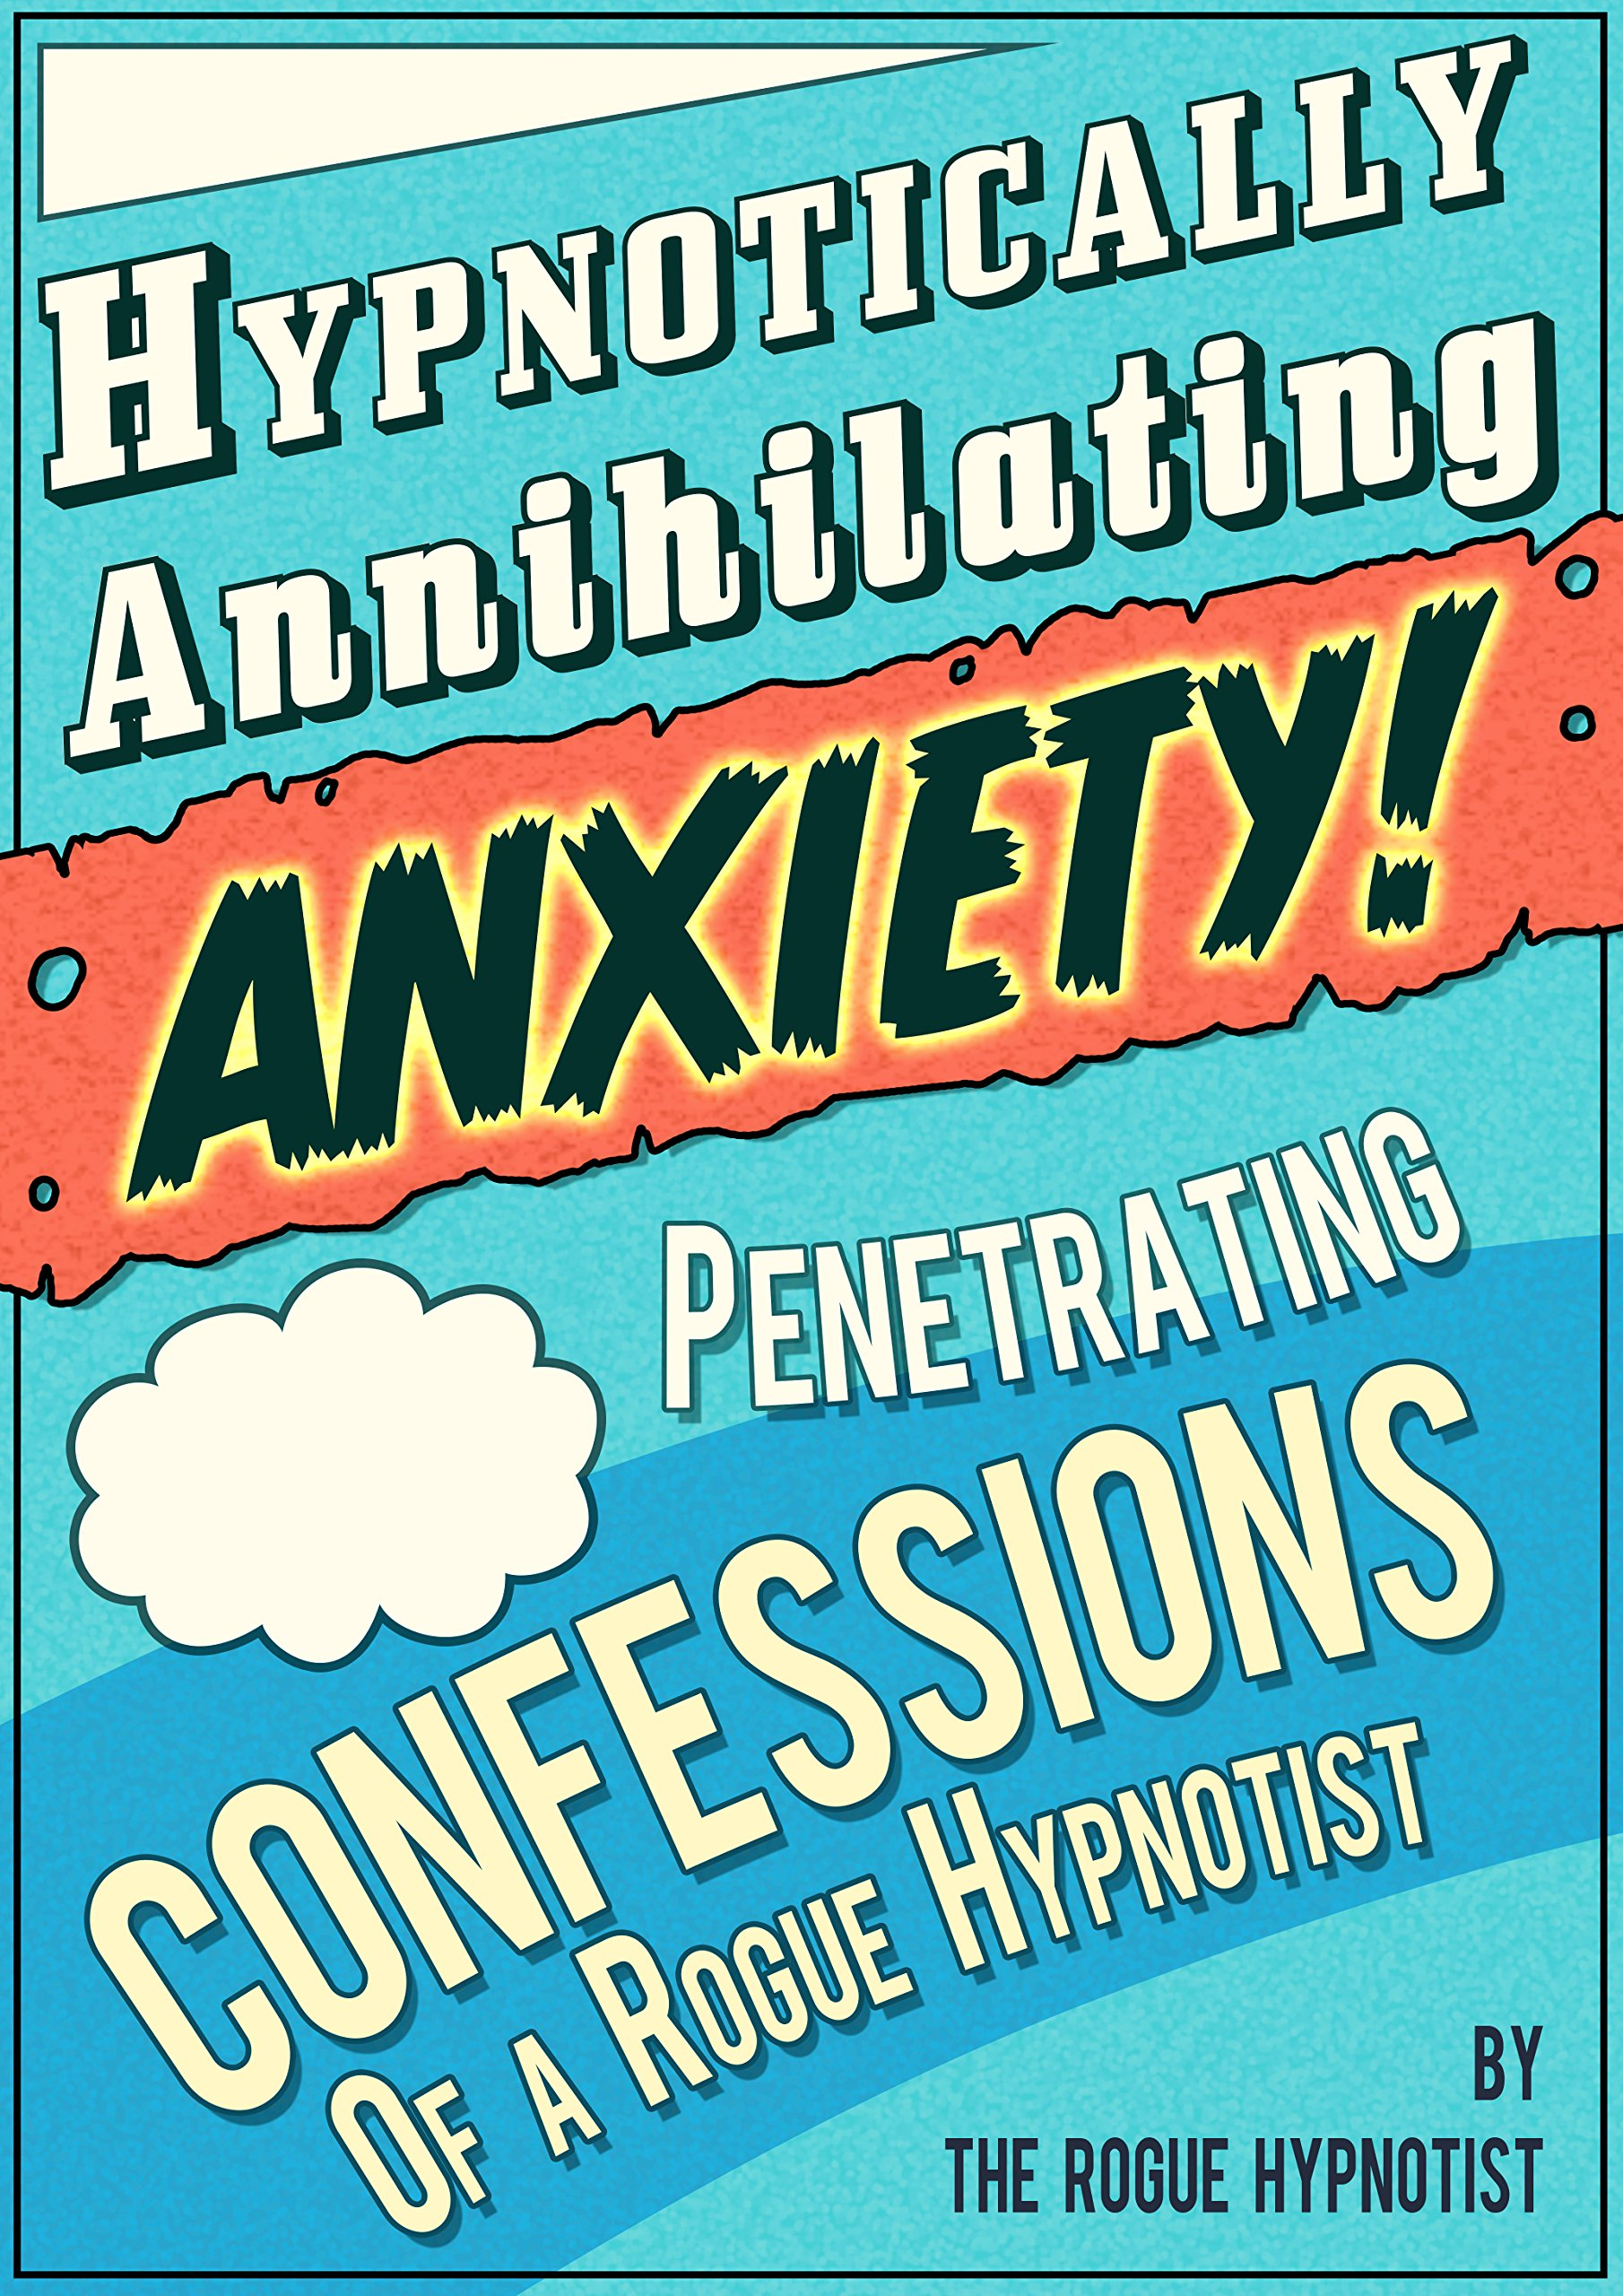 Hypnotically Annihilating Anxiety – Penetrating Confessions of a Rogue Hypnotist